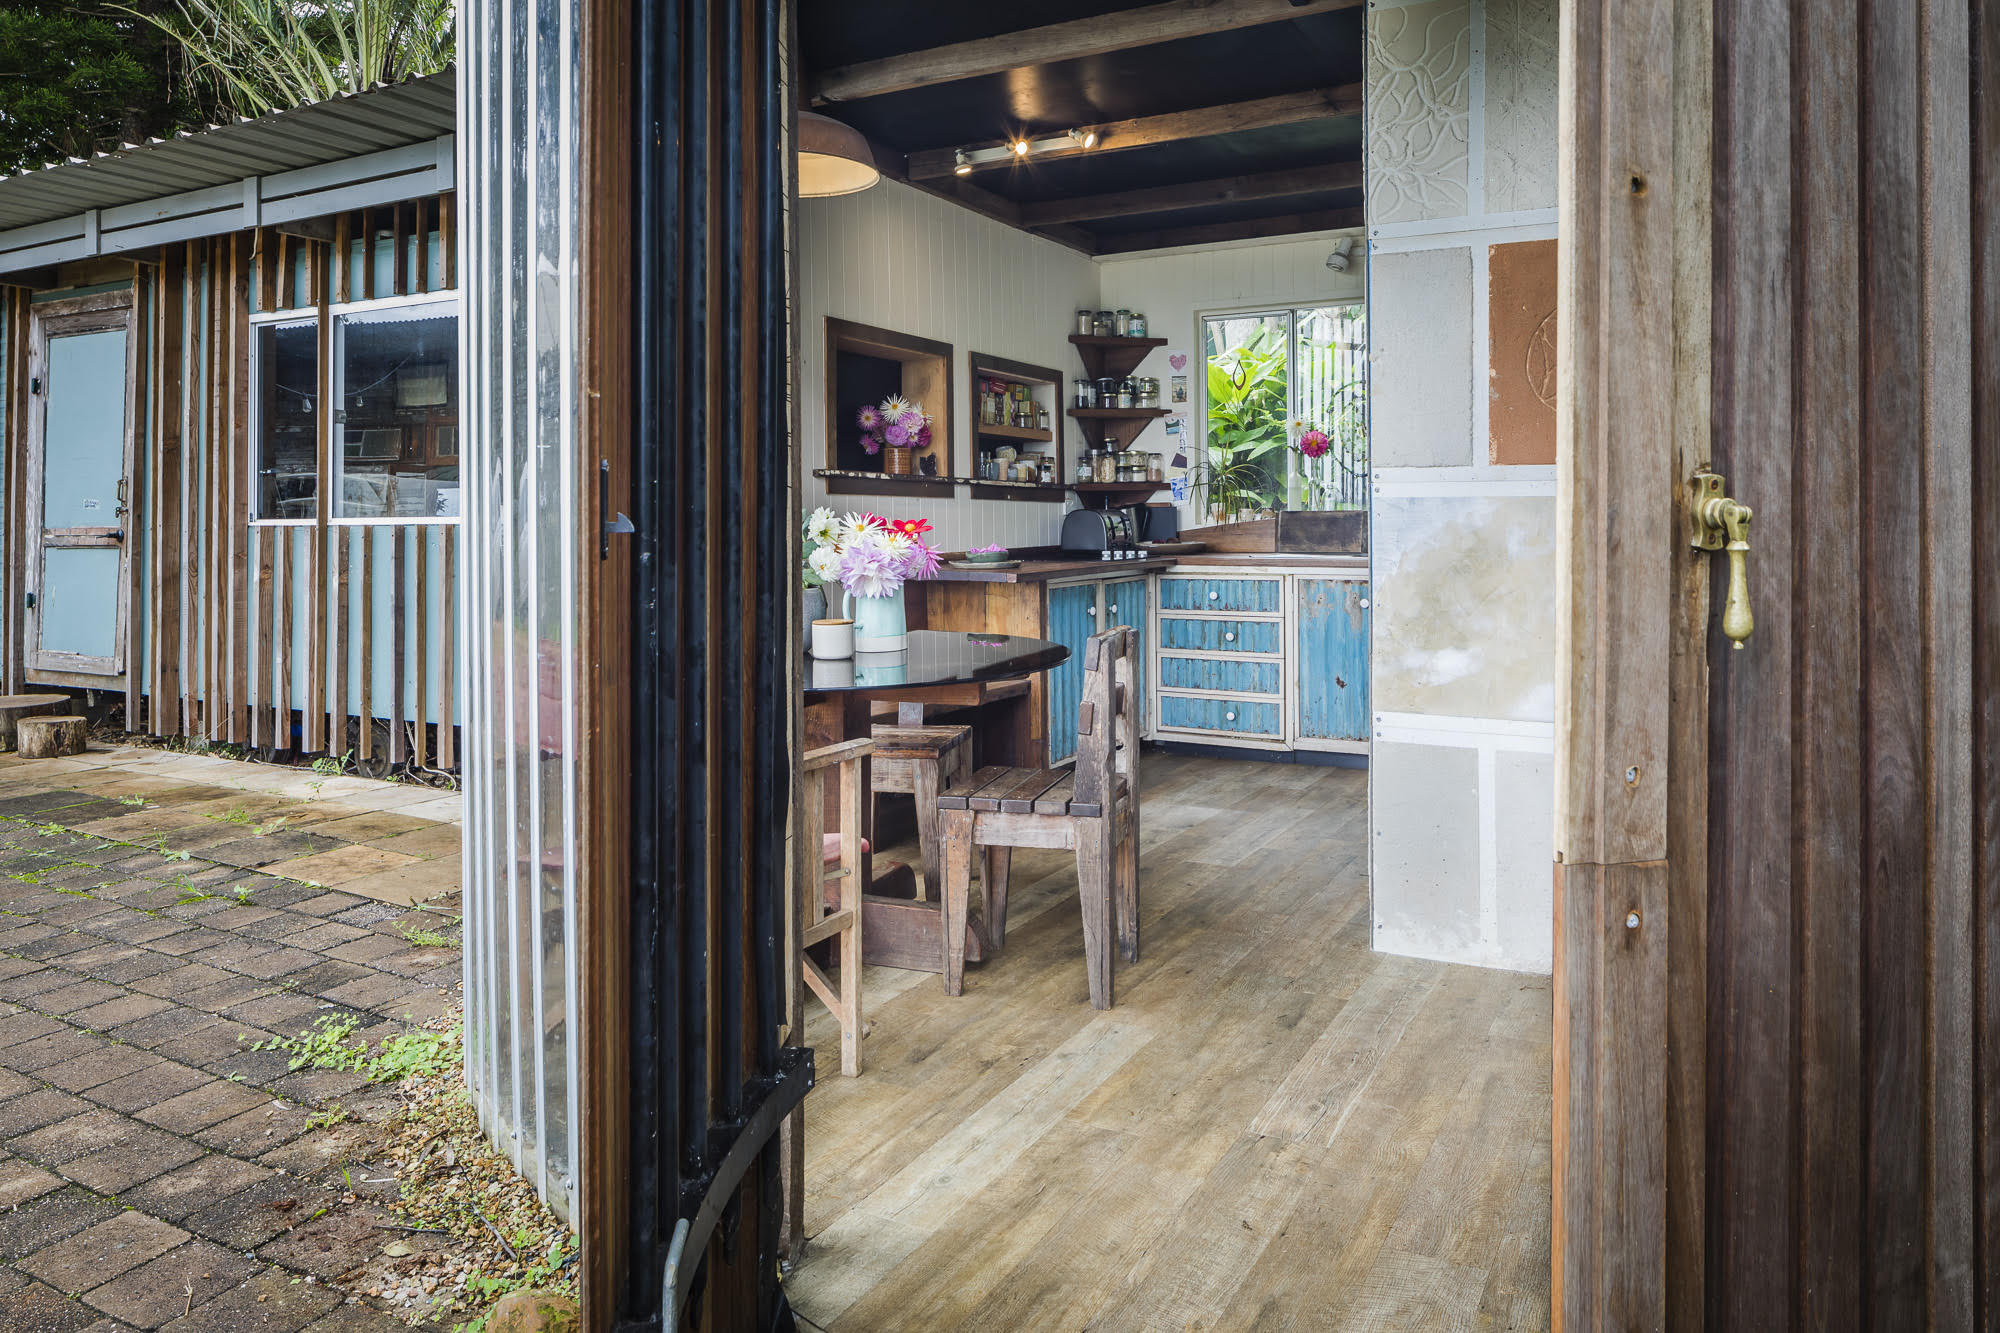 - Across the courtyard is a kitchen and bathroom, formed into a spiral with curved walls built from repurposed warehouse roller doors.Adjoining the kitchen is the original caravan, now the children's bedroom.